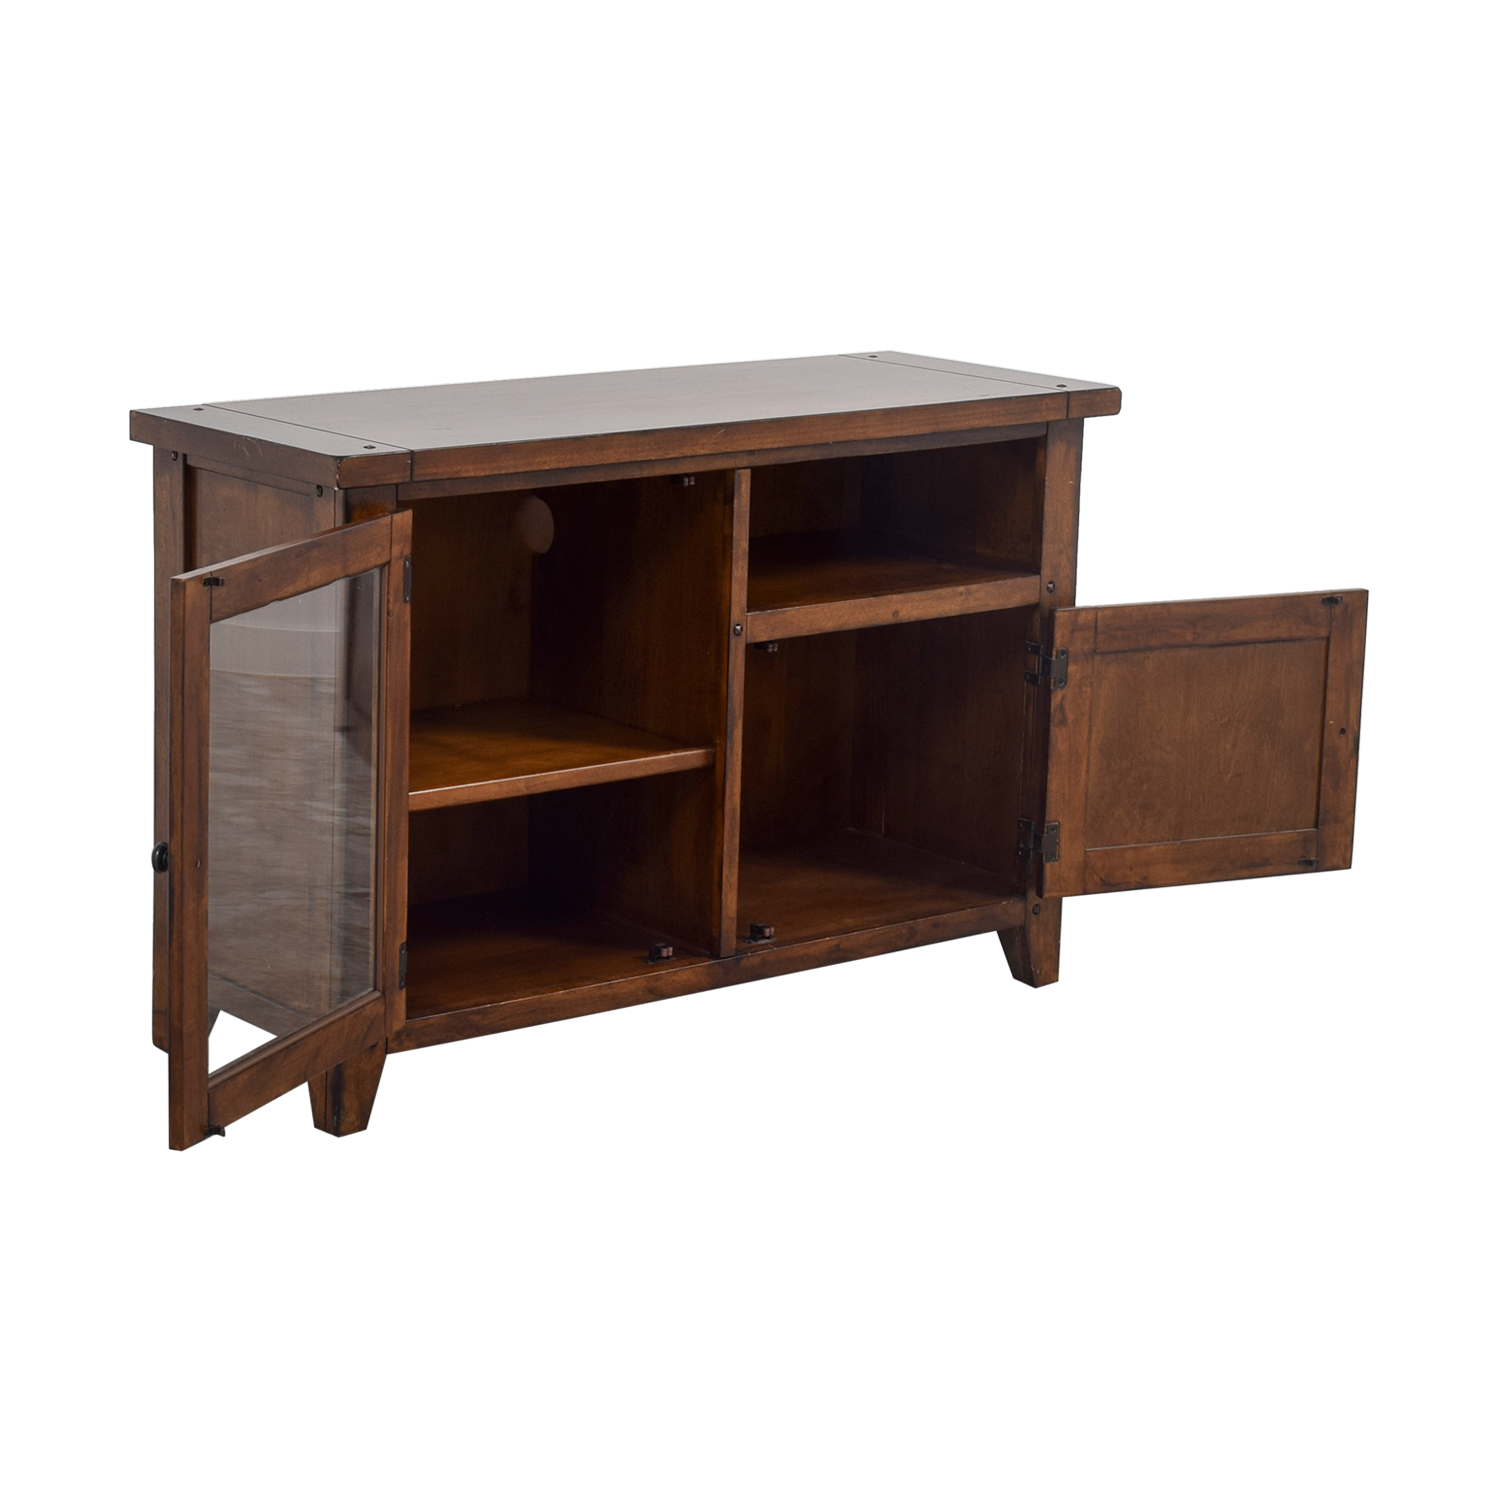 62 Off Pottery Barn Pottery Barn Wood And Glass Media Console Storage